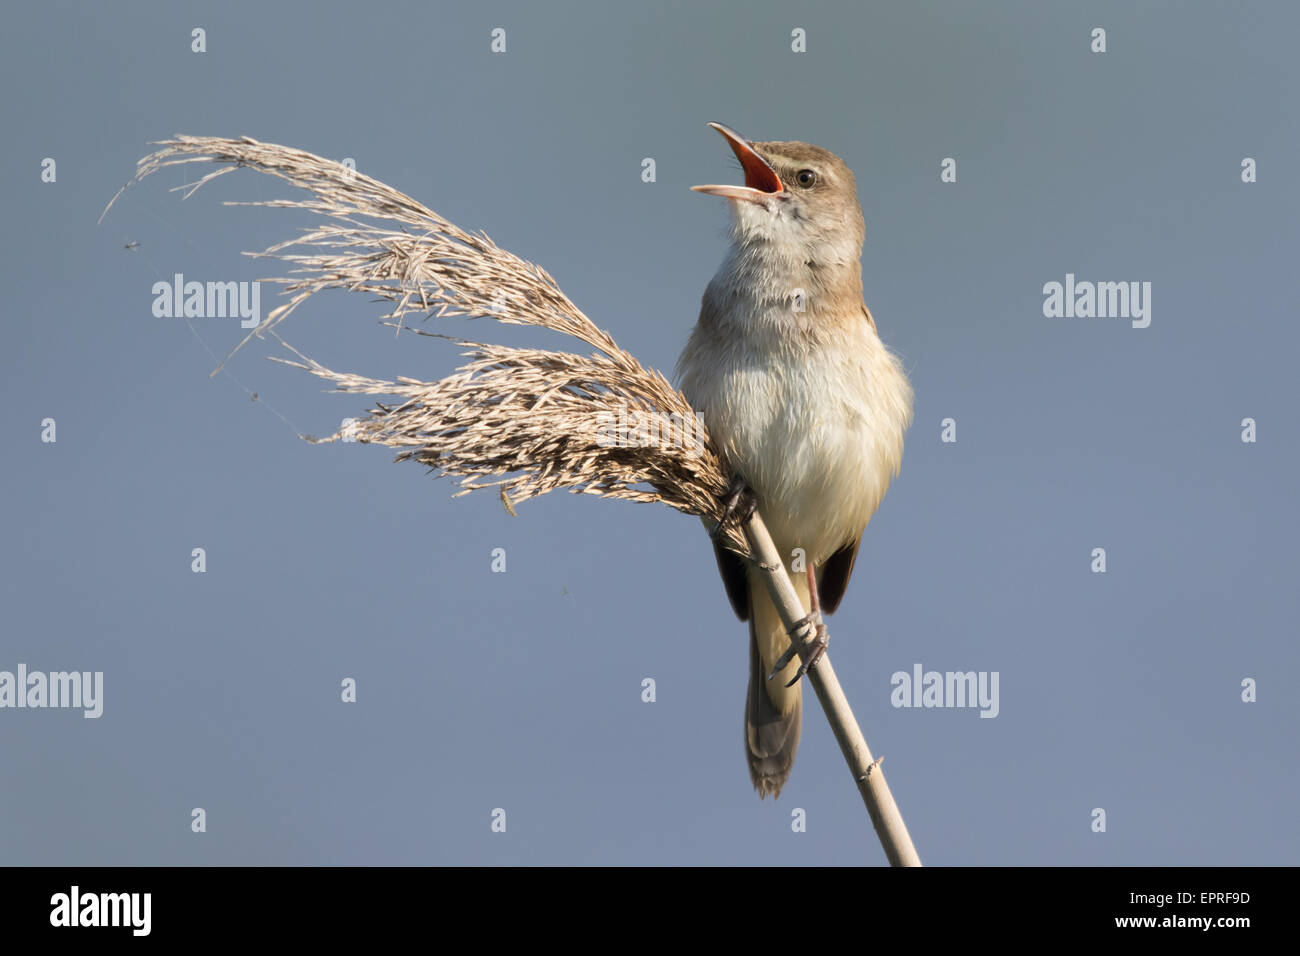 Great Reed Warbler (Acrocephalus arundinaceus) singing from the top of a Phragmites reed Stock Photo